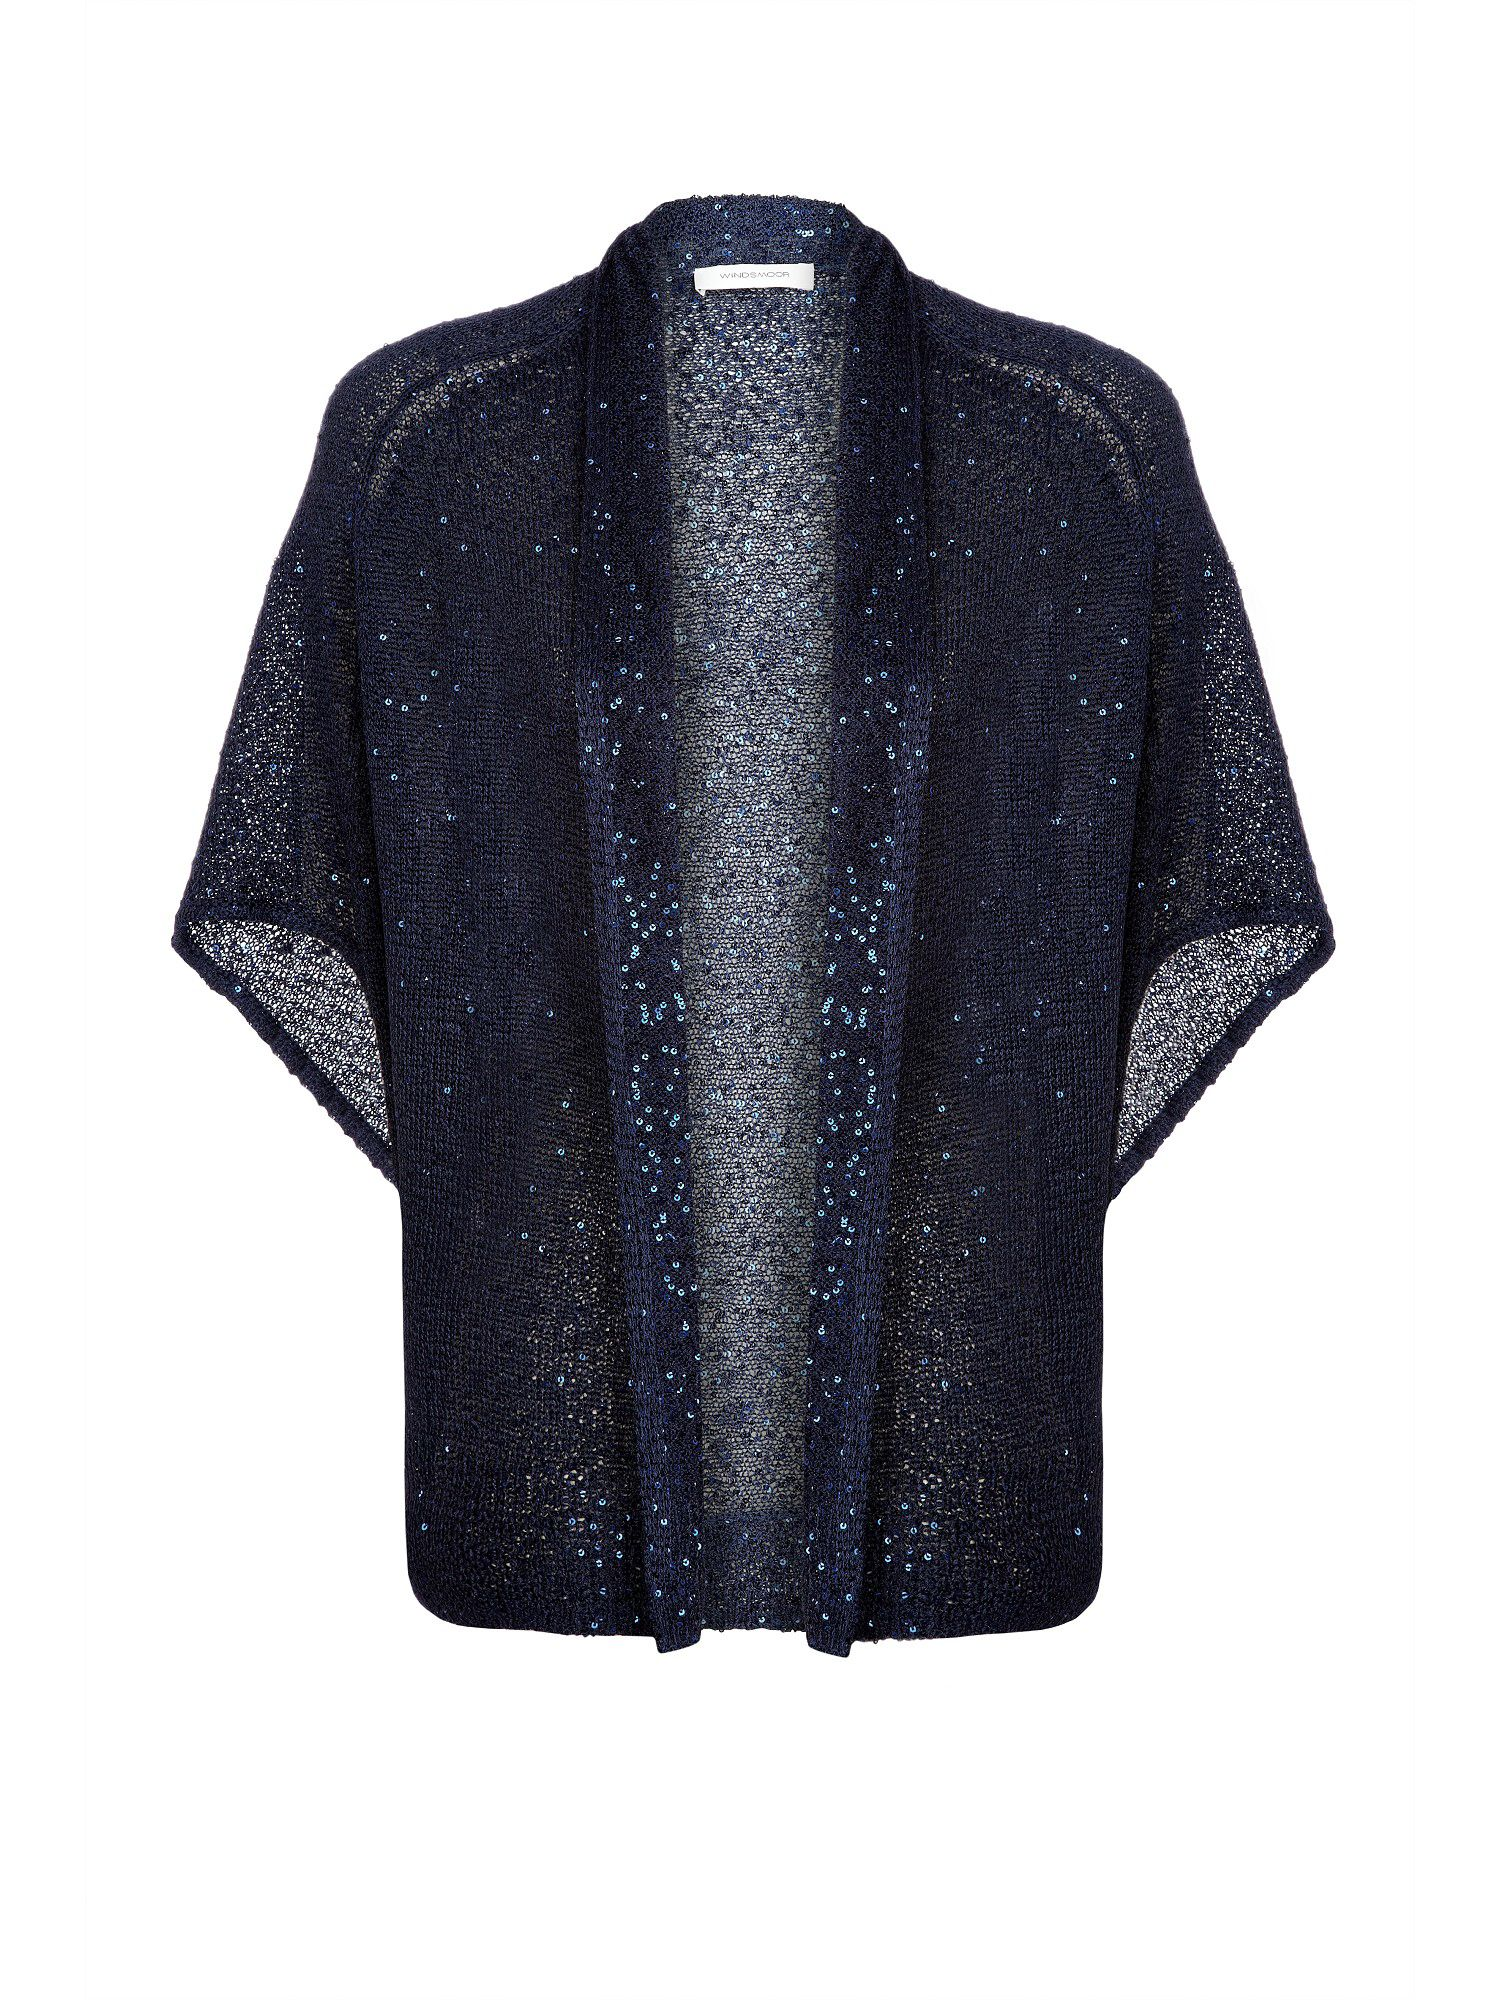 Navy sparkle cardigan